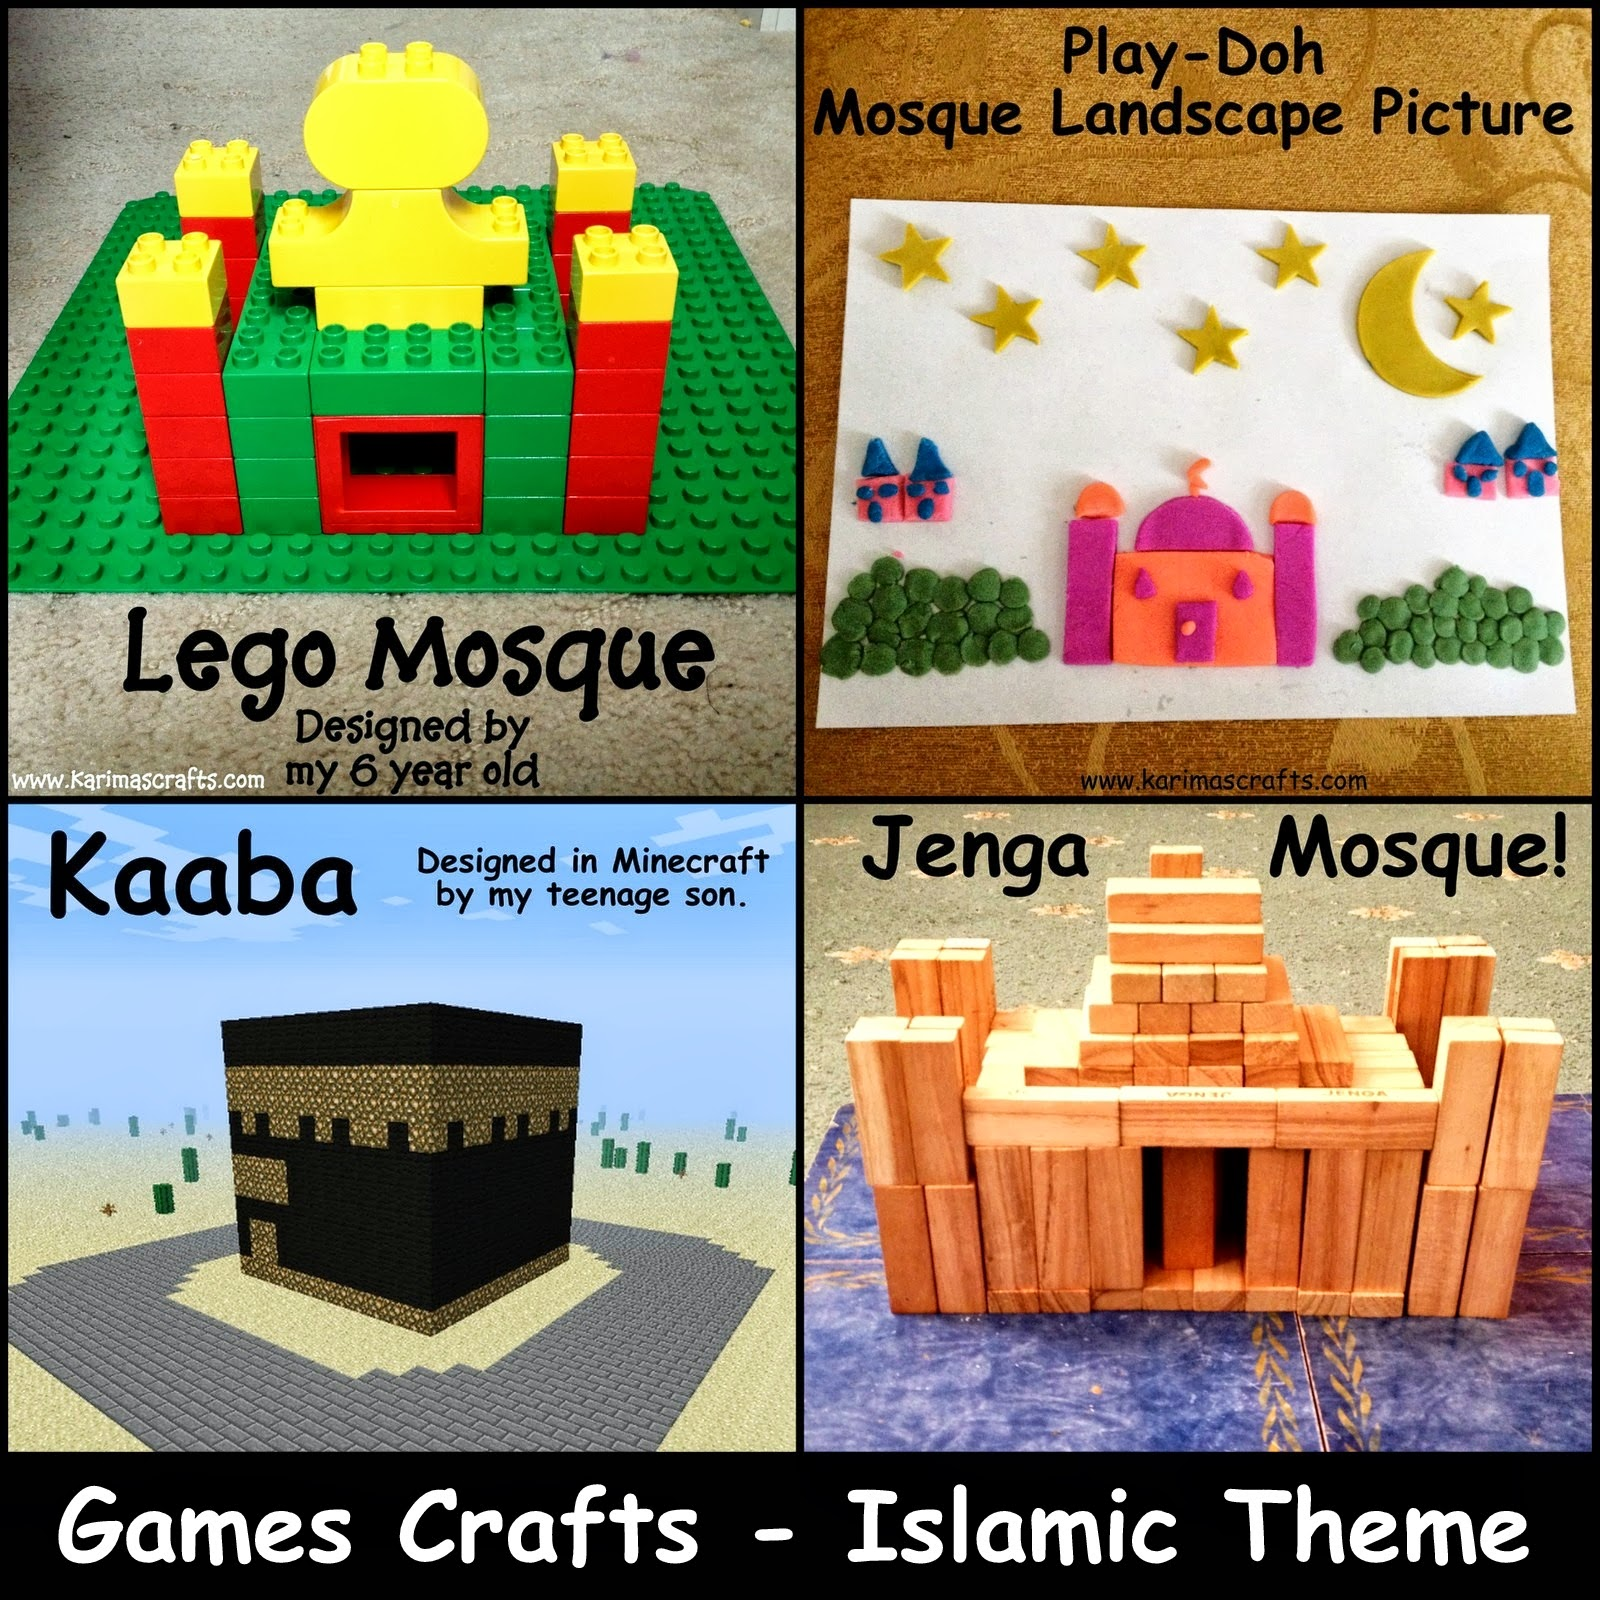 games crafts lego jenga play-doh minecraft ramadan crafts islam muslim